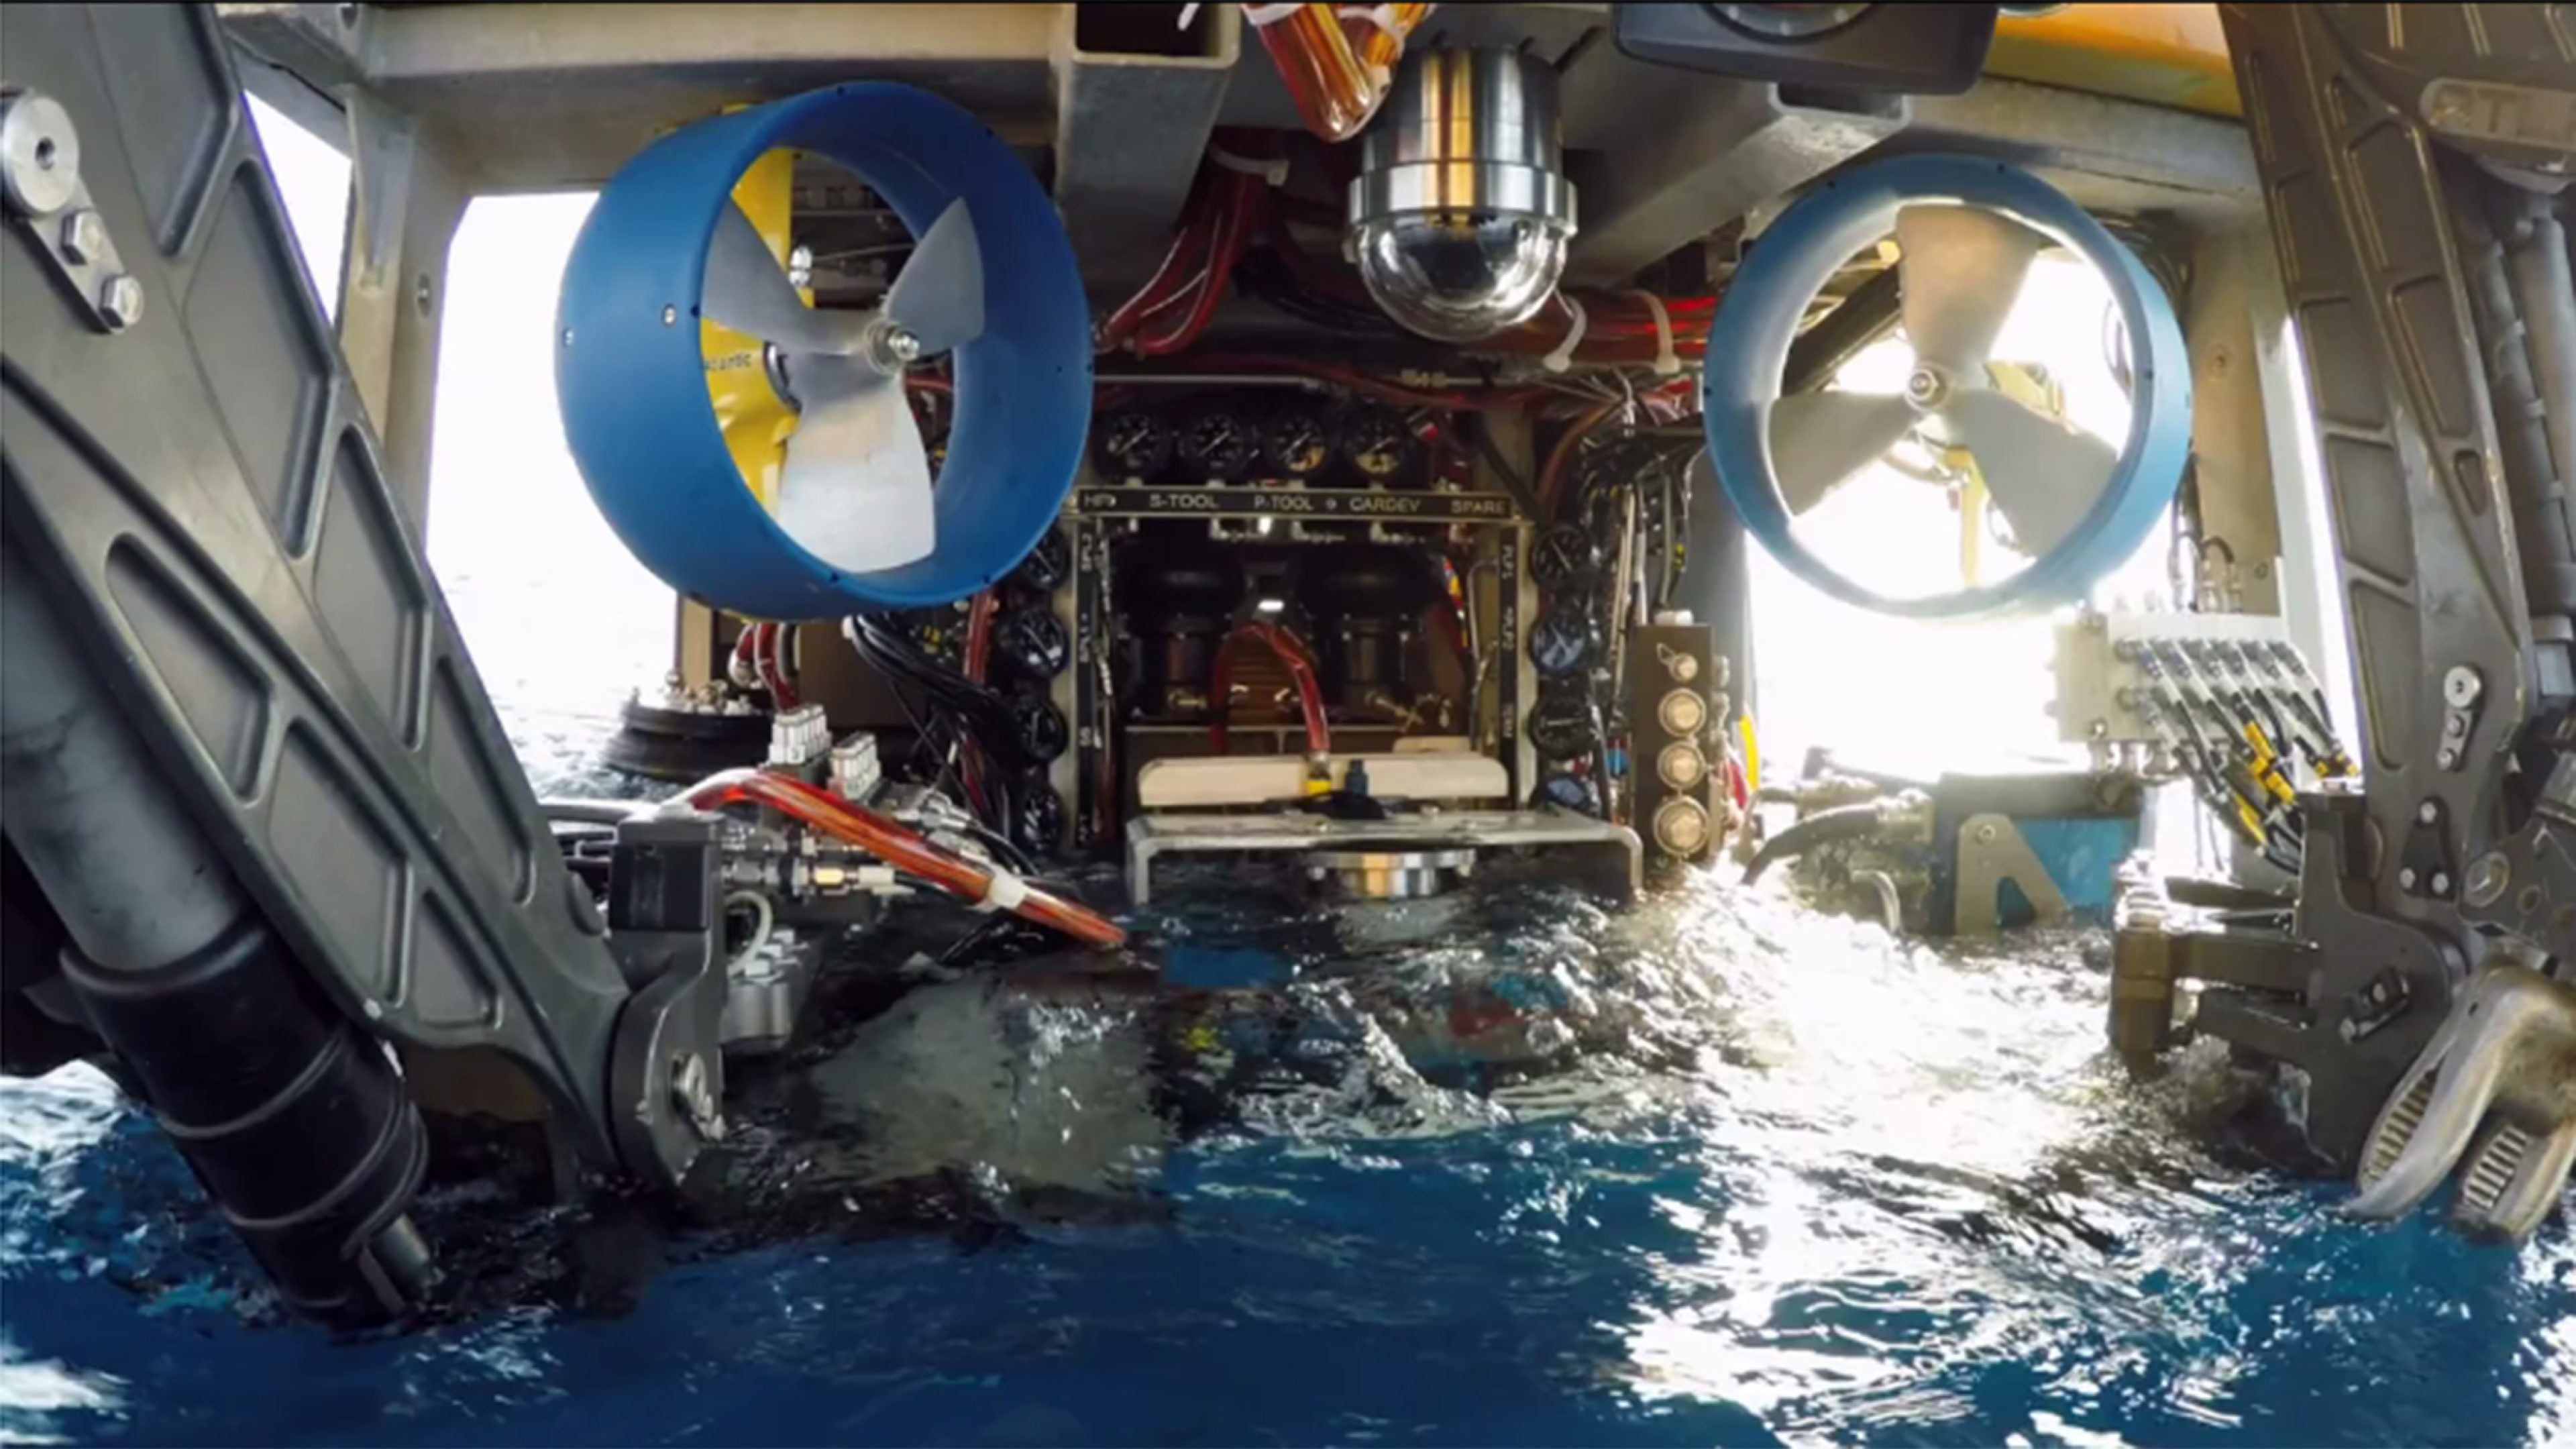 A remote operated vehicle (ROV) is deployed at sea